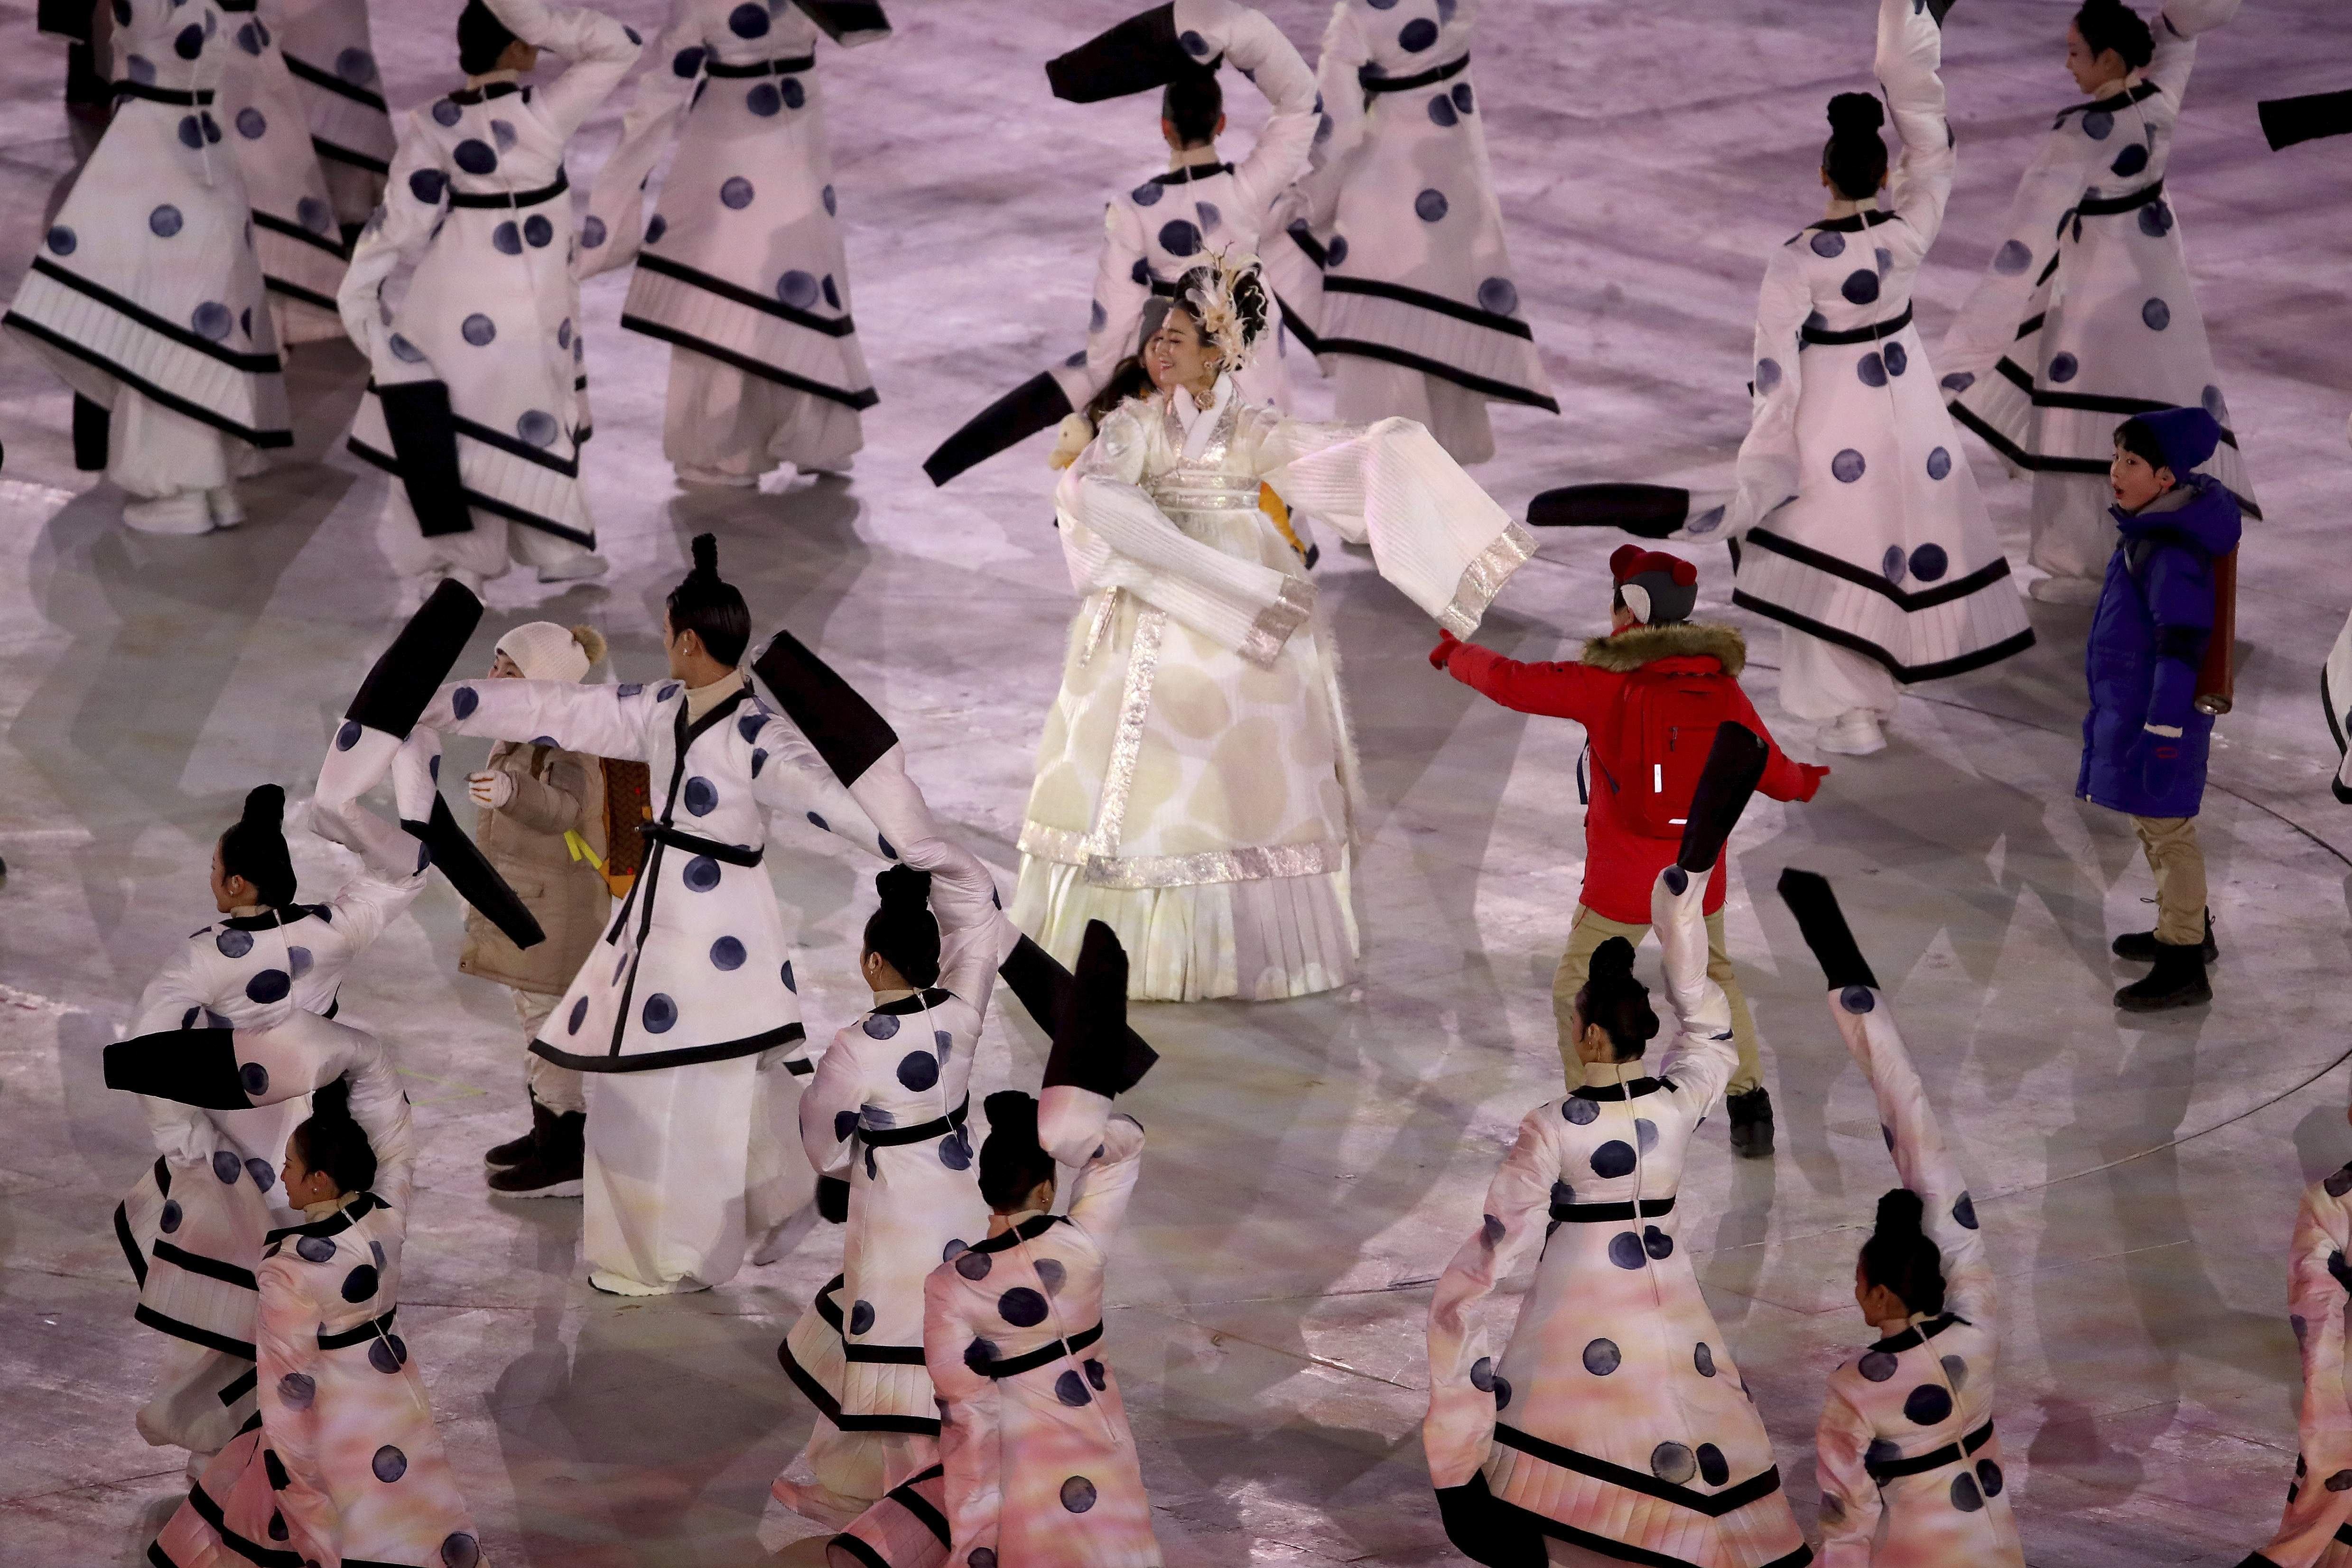 Performers dance during the opening ceremony of the 2018 Winter Olympics in Pyeongchang, South Korea, Friday, Feb. 9, 2018. (Sean Haffey/Pool Photo via AP)